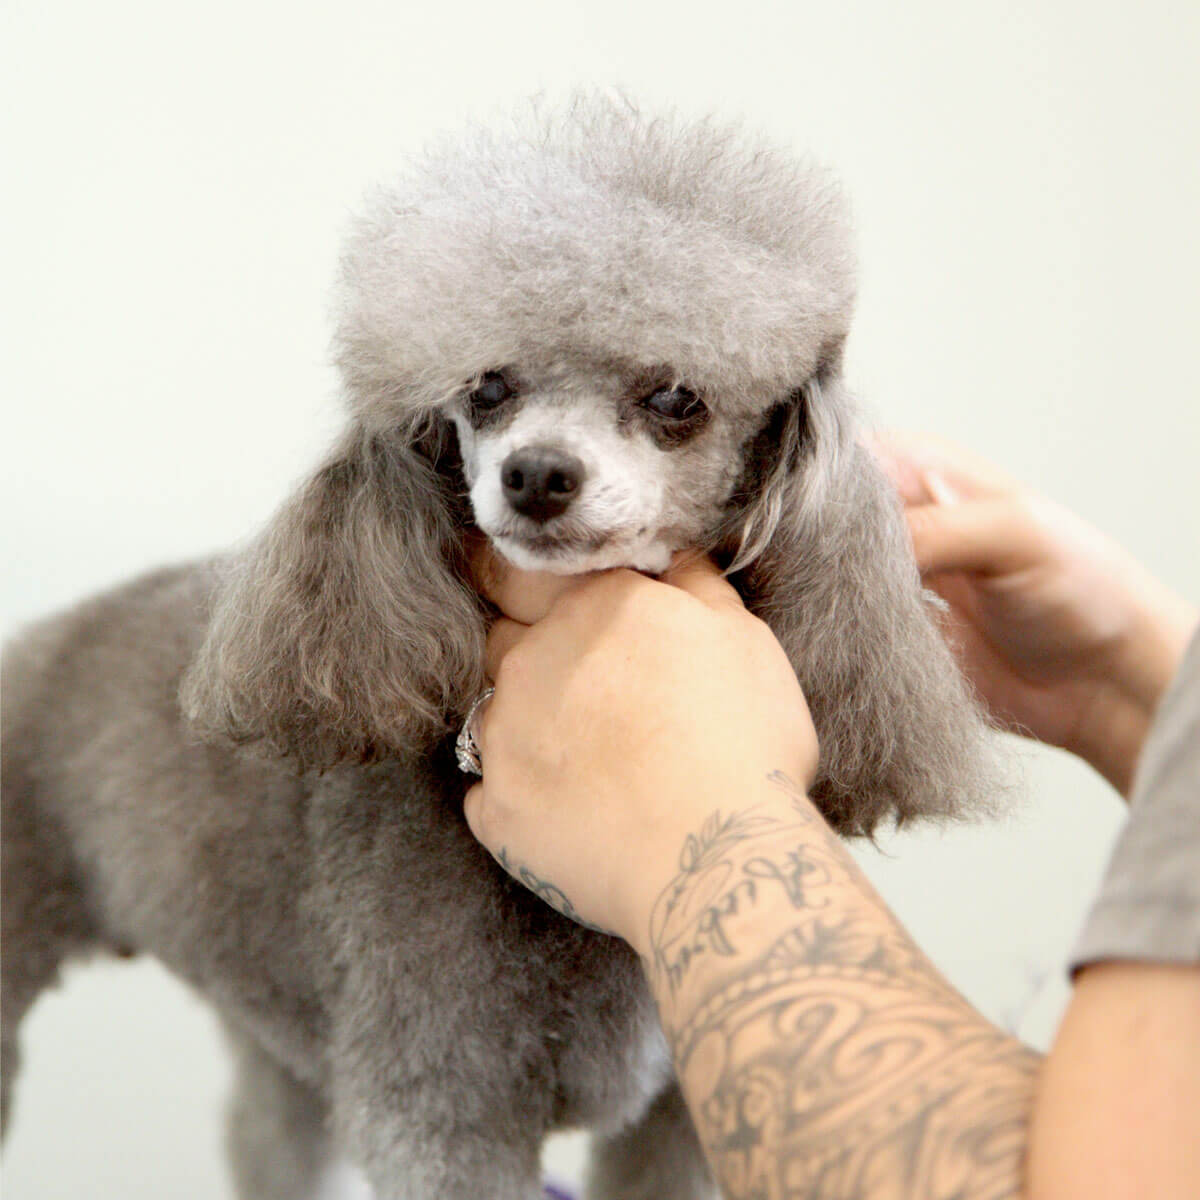 gray toy poodle at pet salon getting hair trimmed